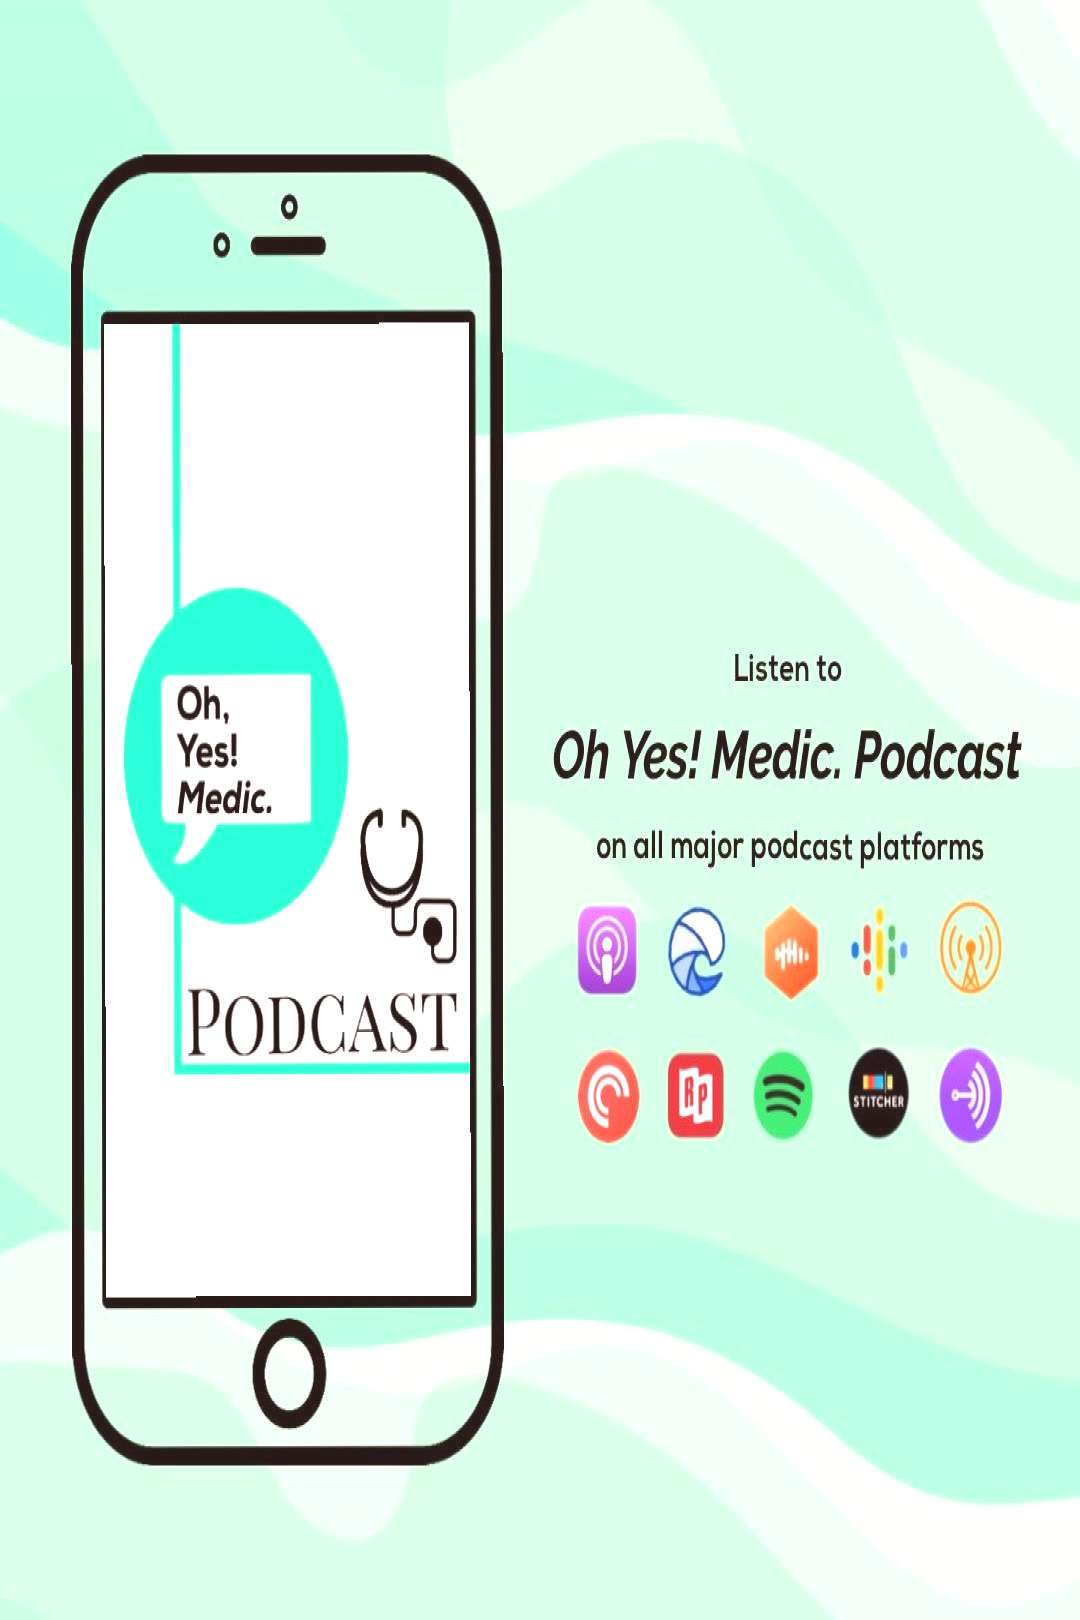 Do you think this Medical School Podcast is what you are looking for? Oh Yes! Medic podcast is for